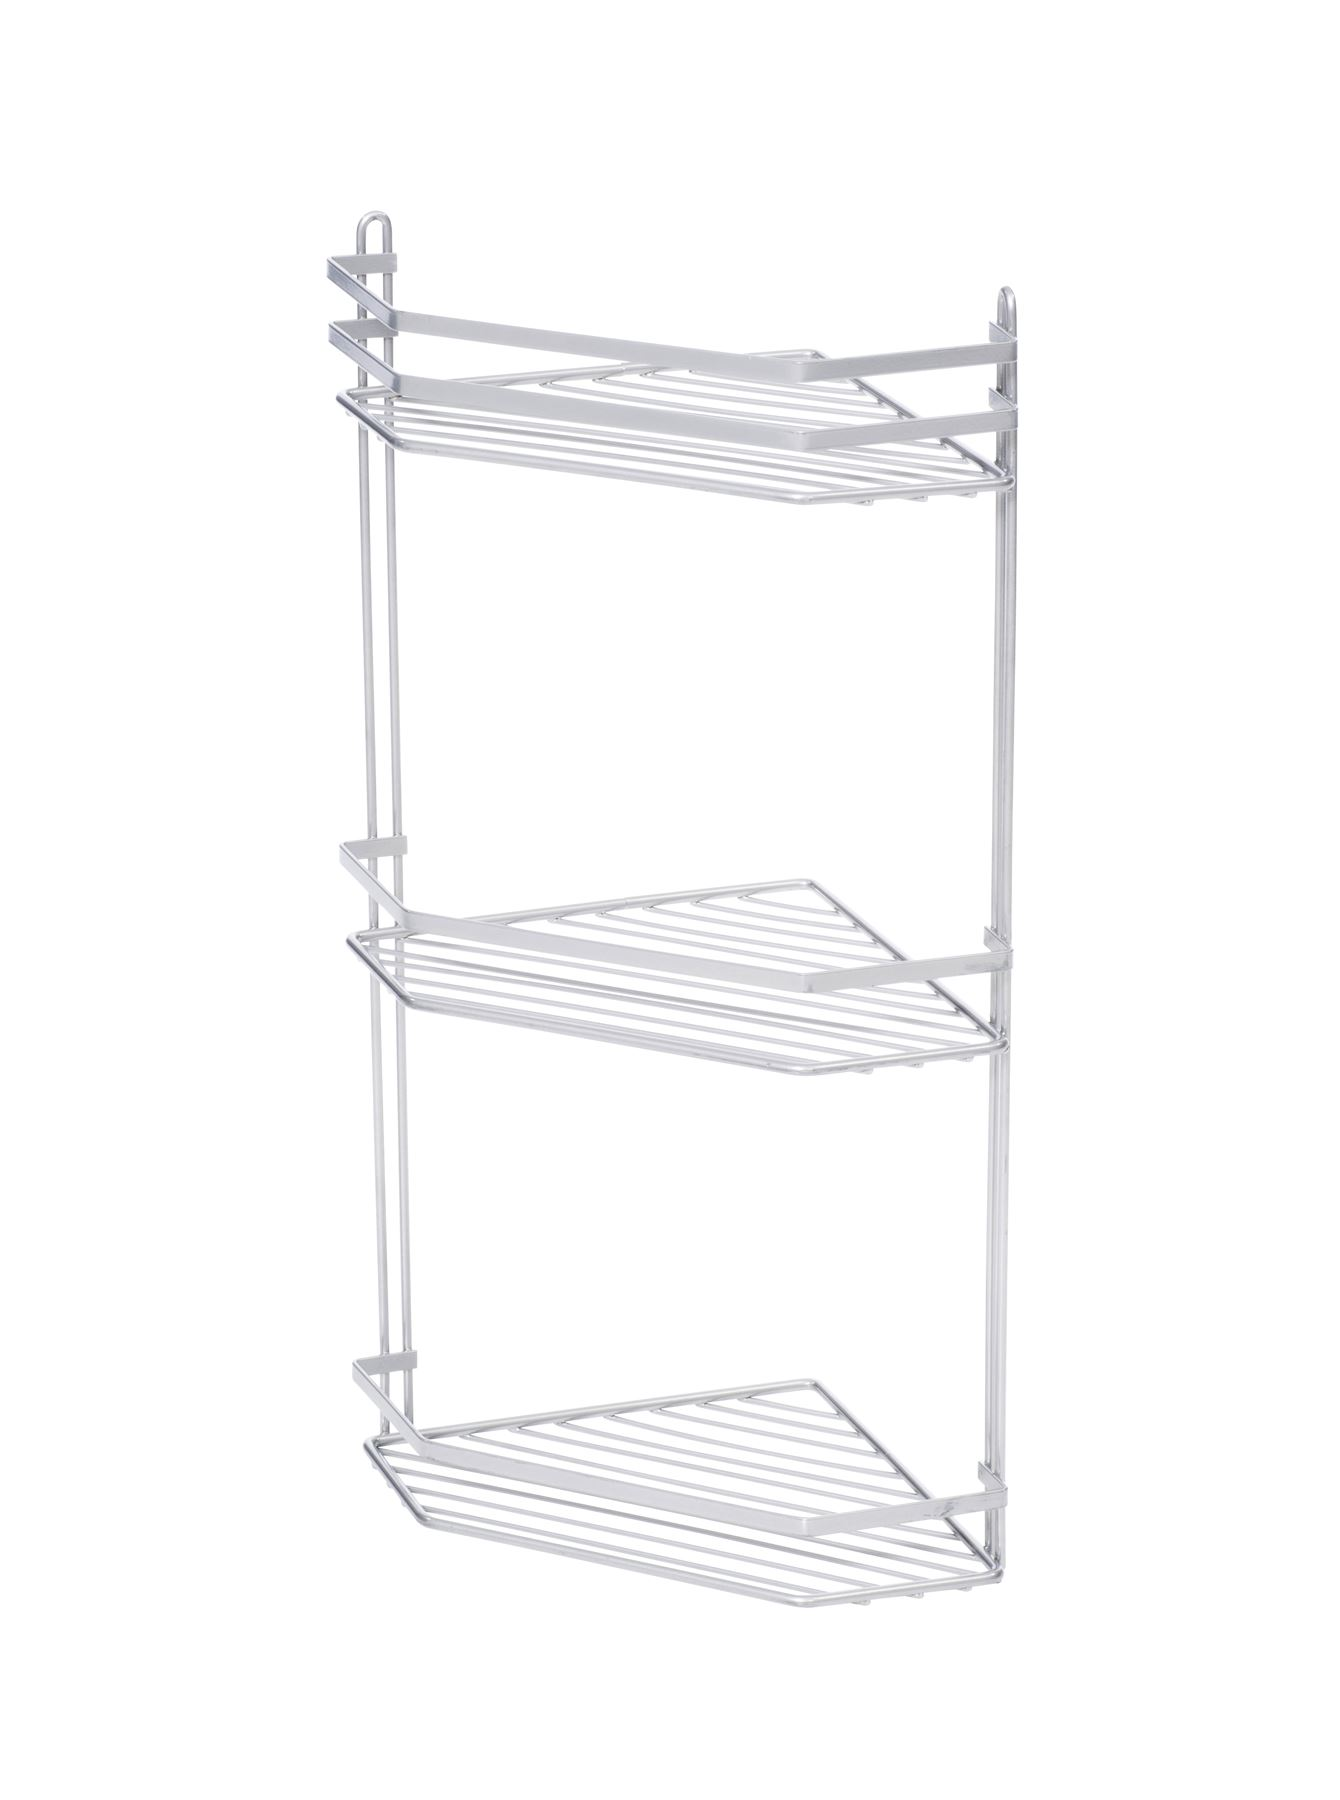 3 Tier Metallic Corner Shower Caddy Bathroom Storage Rack Shelf ...